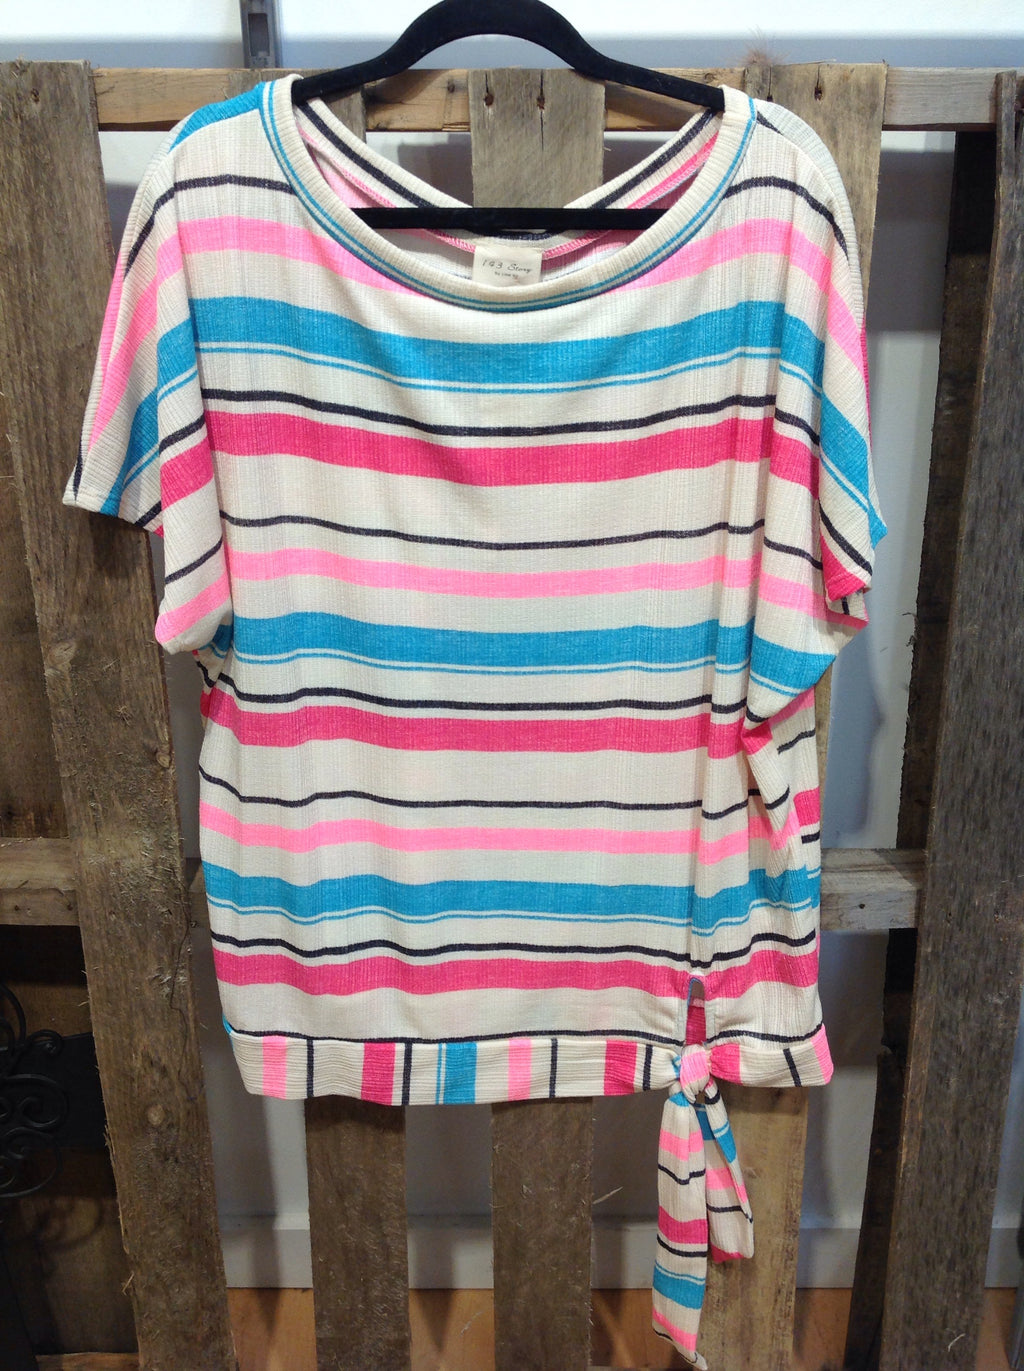 Curvy Neon Striped Top